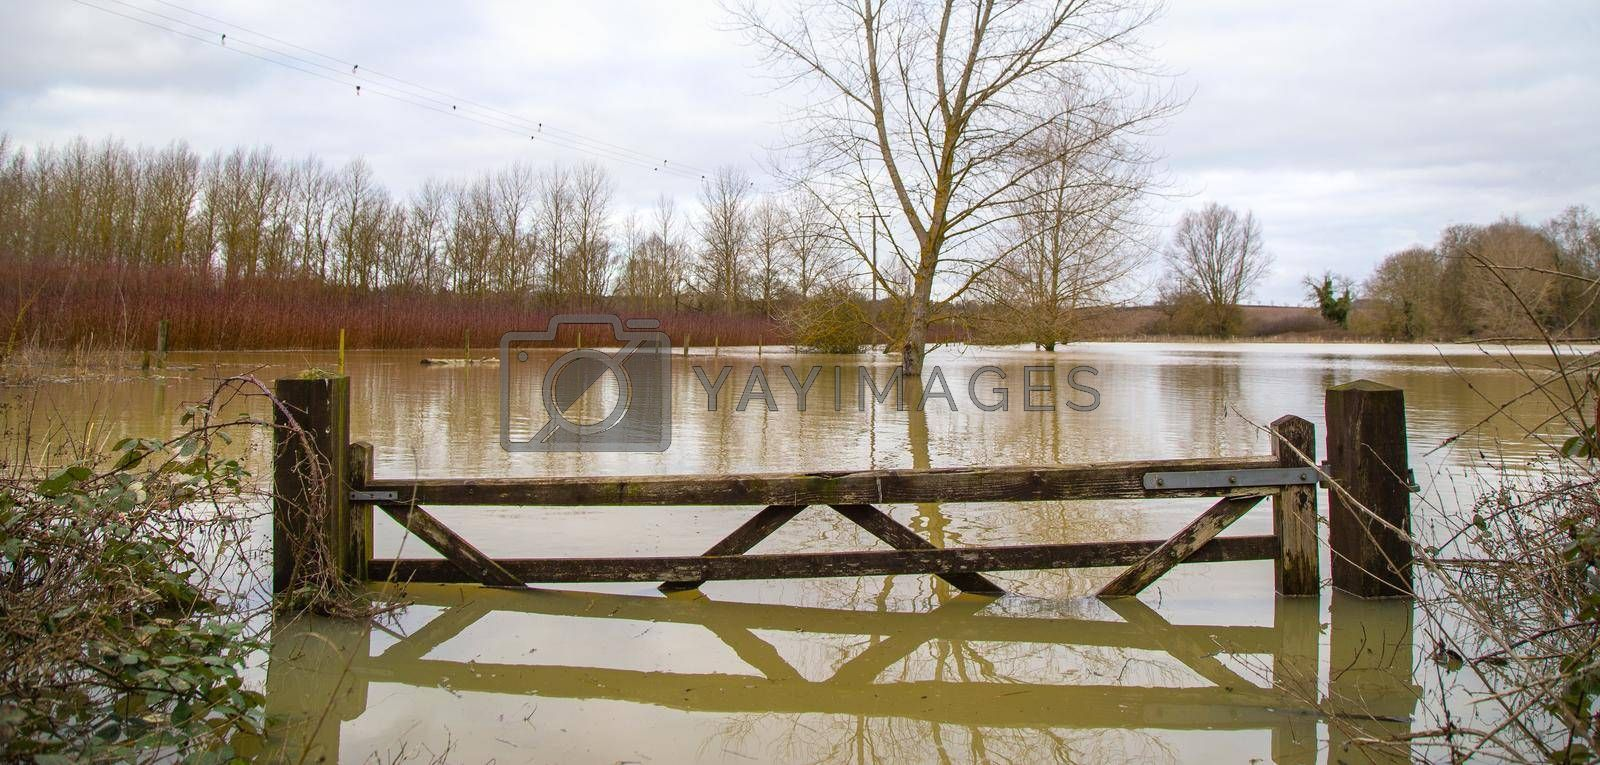 Flood water in fields, UK countryside, 2021. Climate change, extreme weather, global warming. Global floods risk under climate change. Flooded wooden filed gate